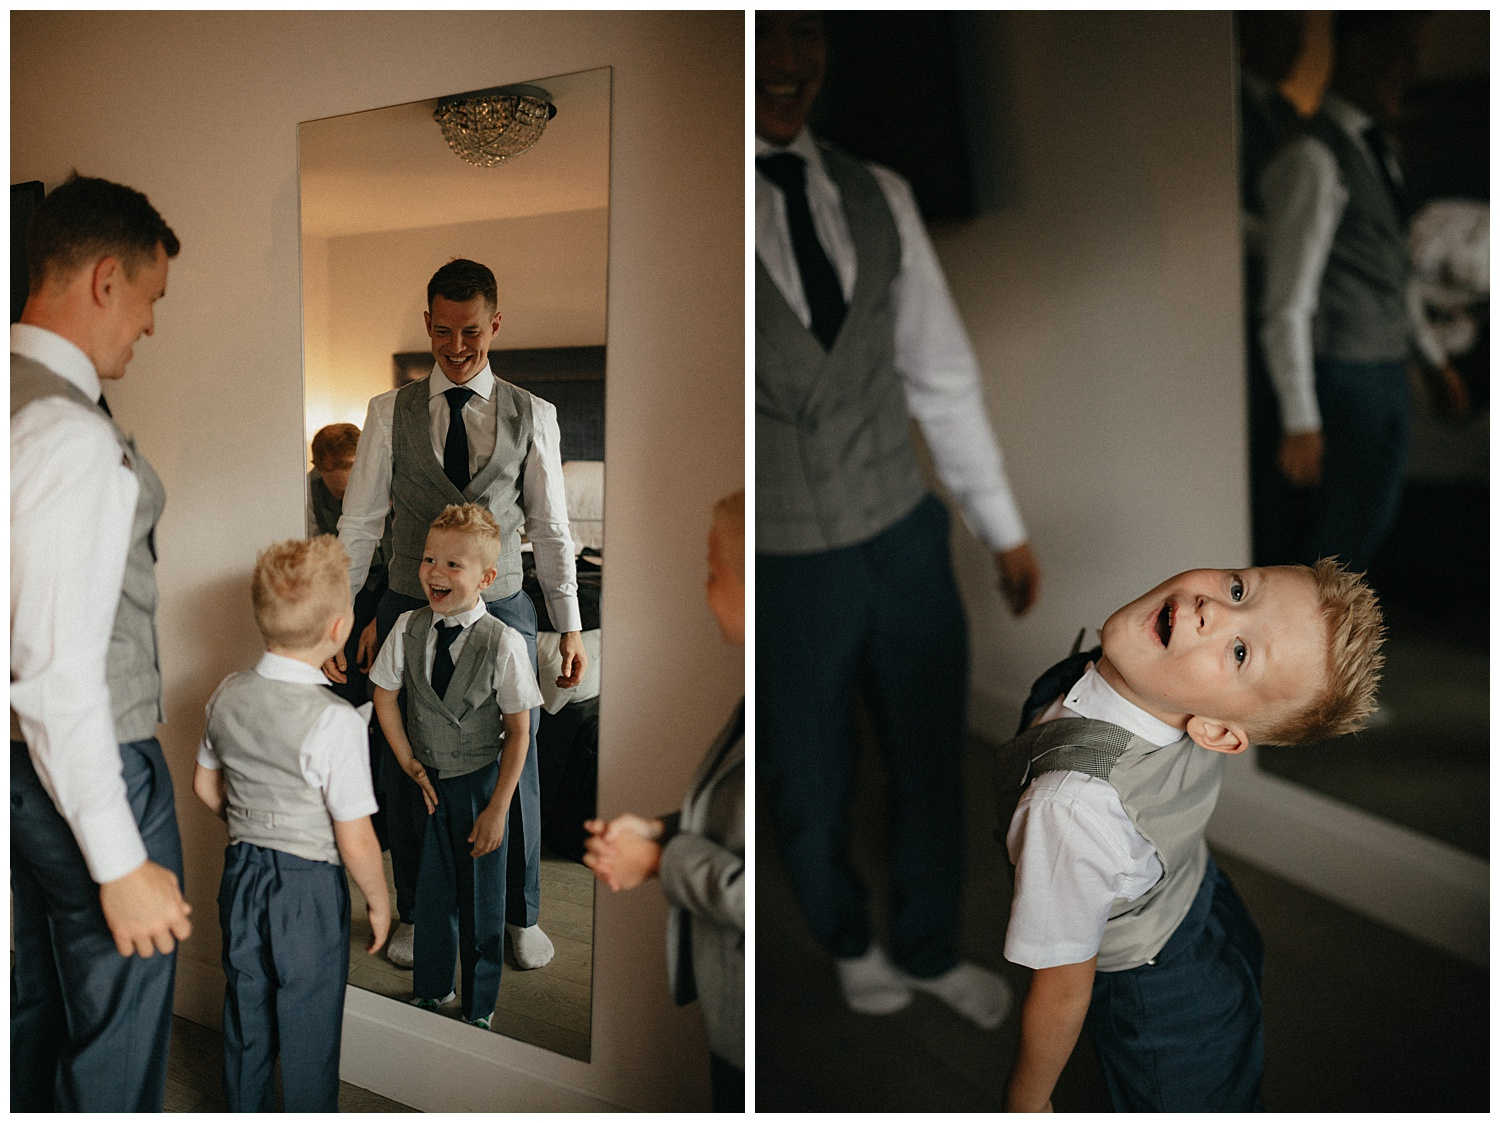 Weddings-at-Crondon-Park-the-groomsmen-laugh-in-the-mirror